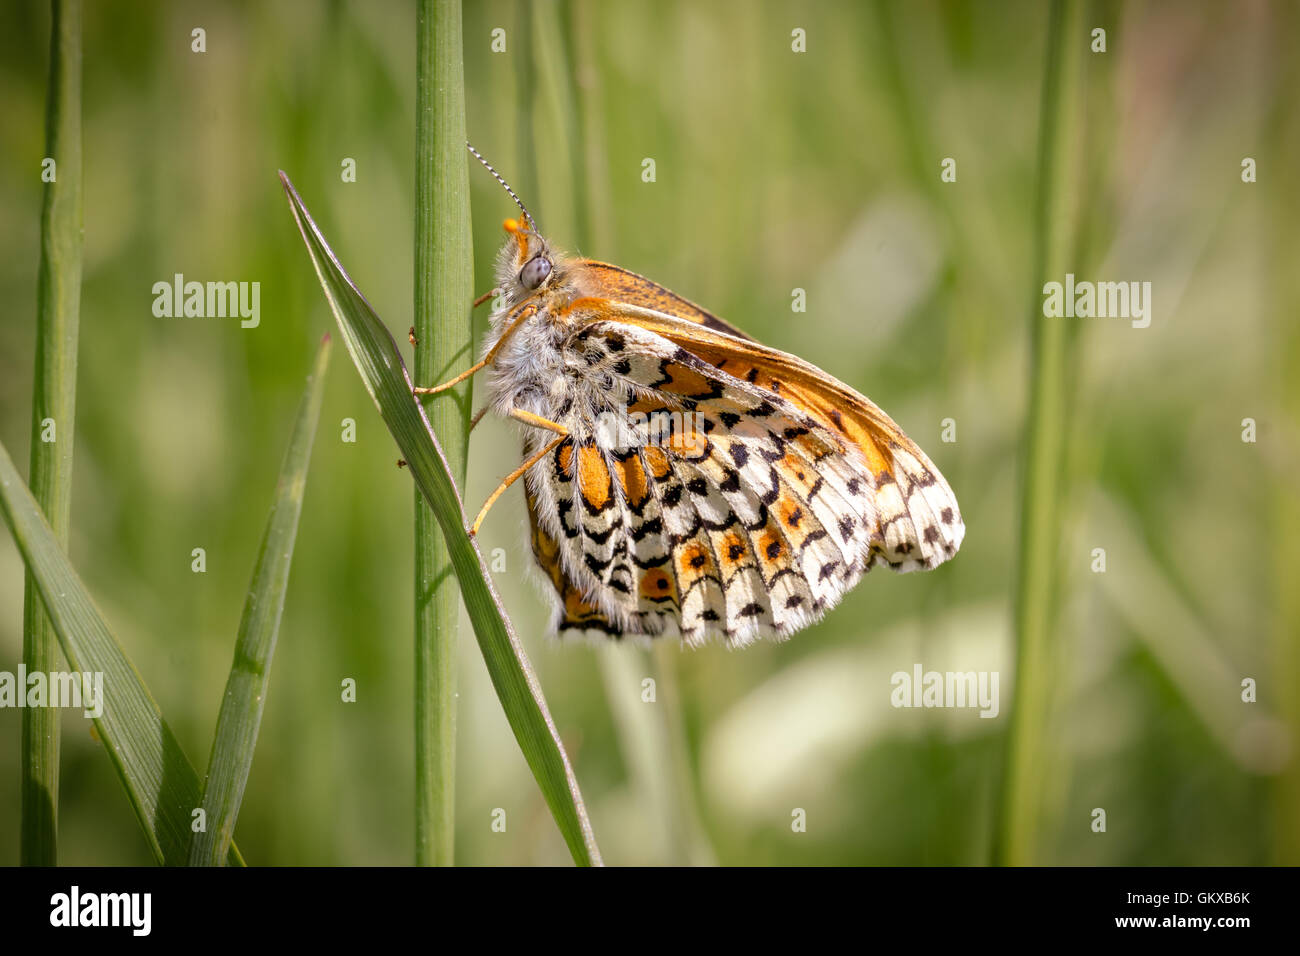 A butterfly on a blade of grass - Stock Image